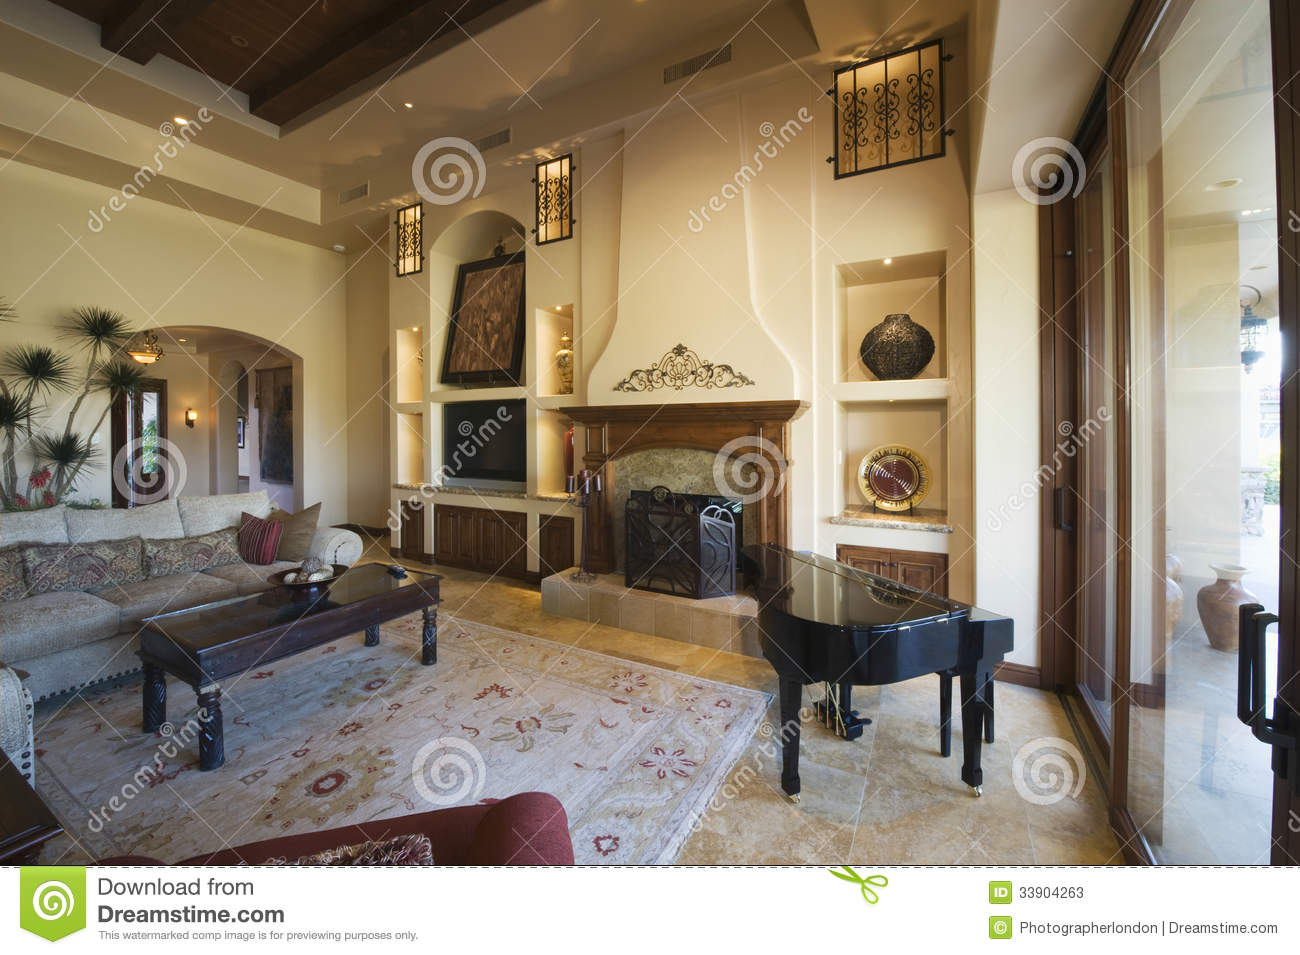 Living Room With Baby Grand Piano At Home Stock Image